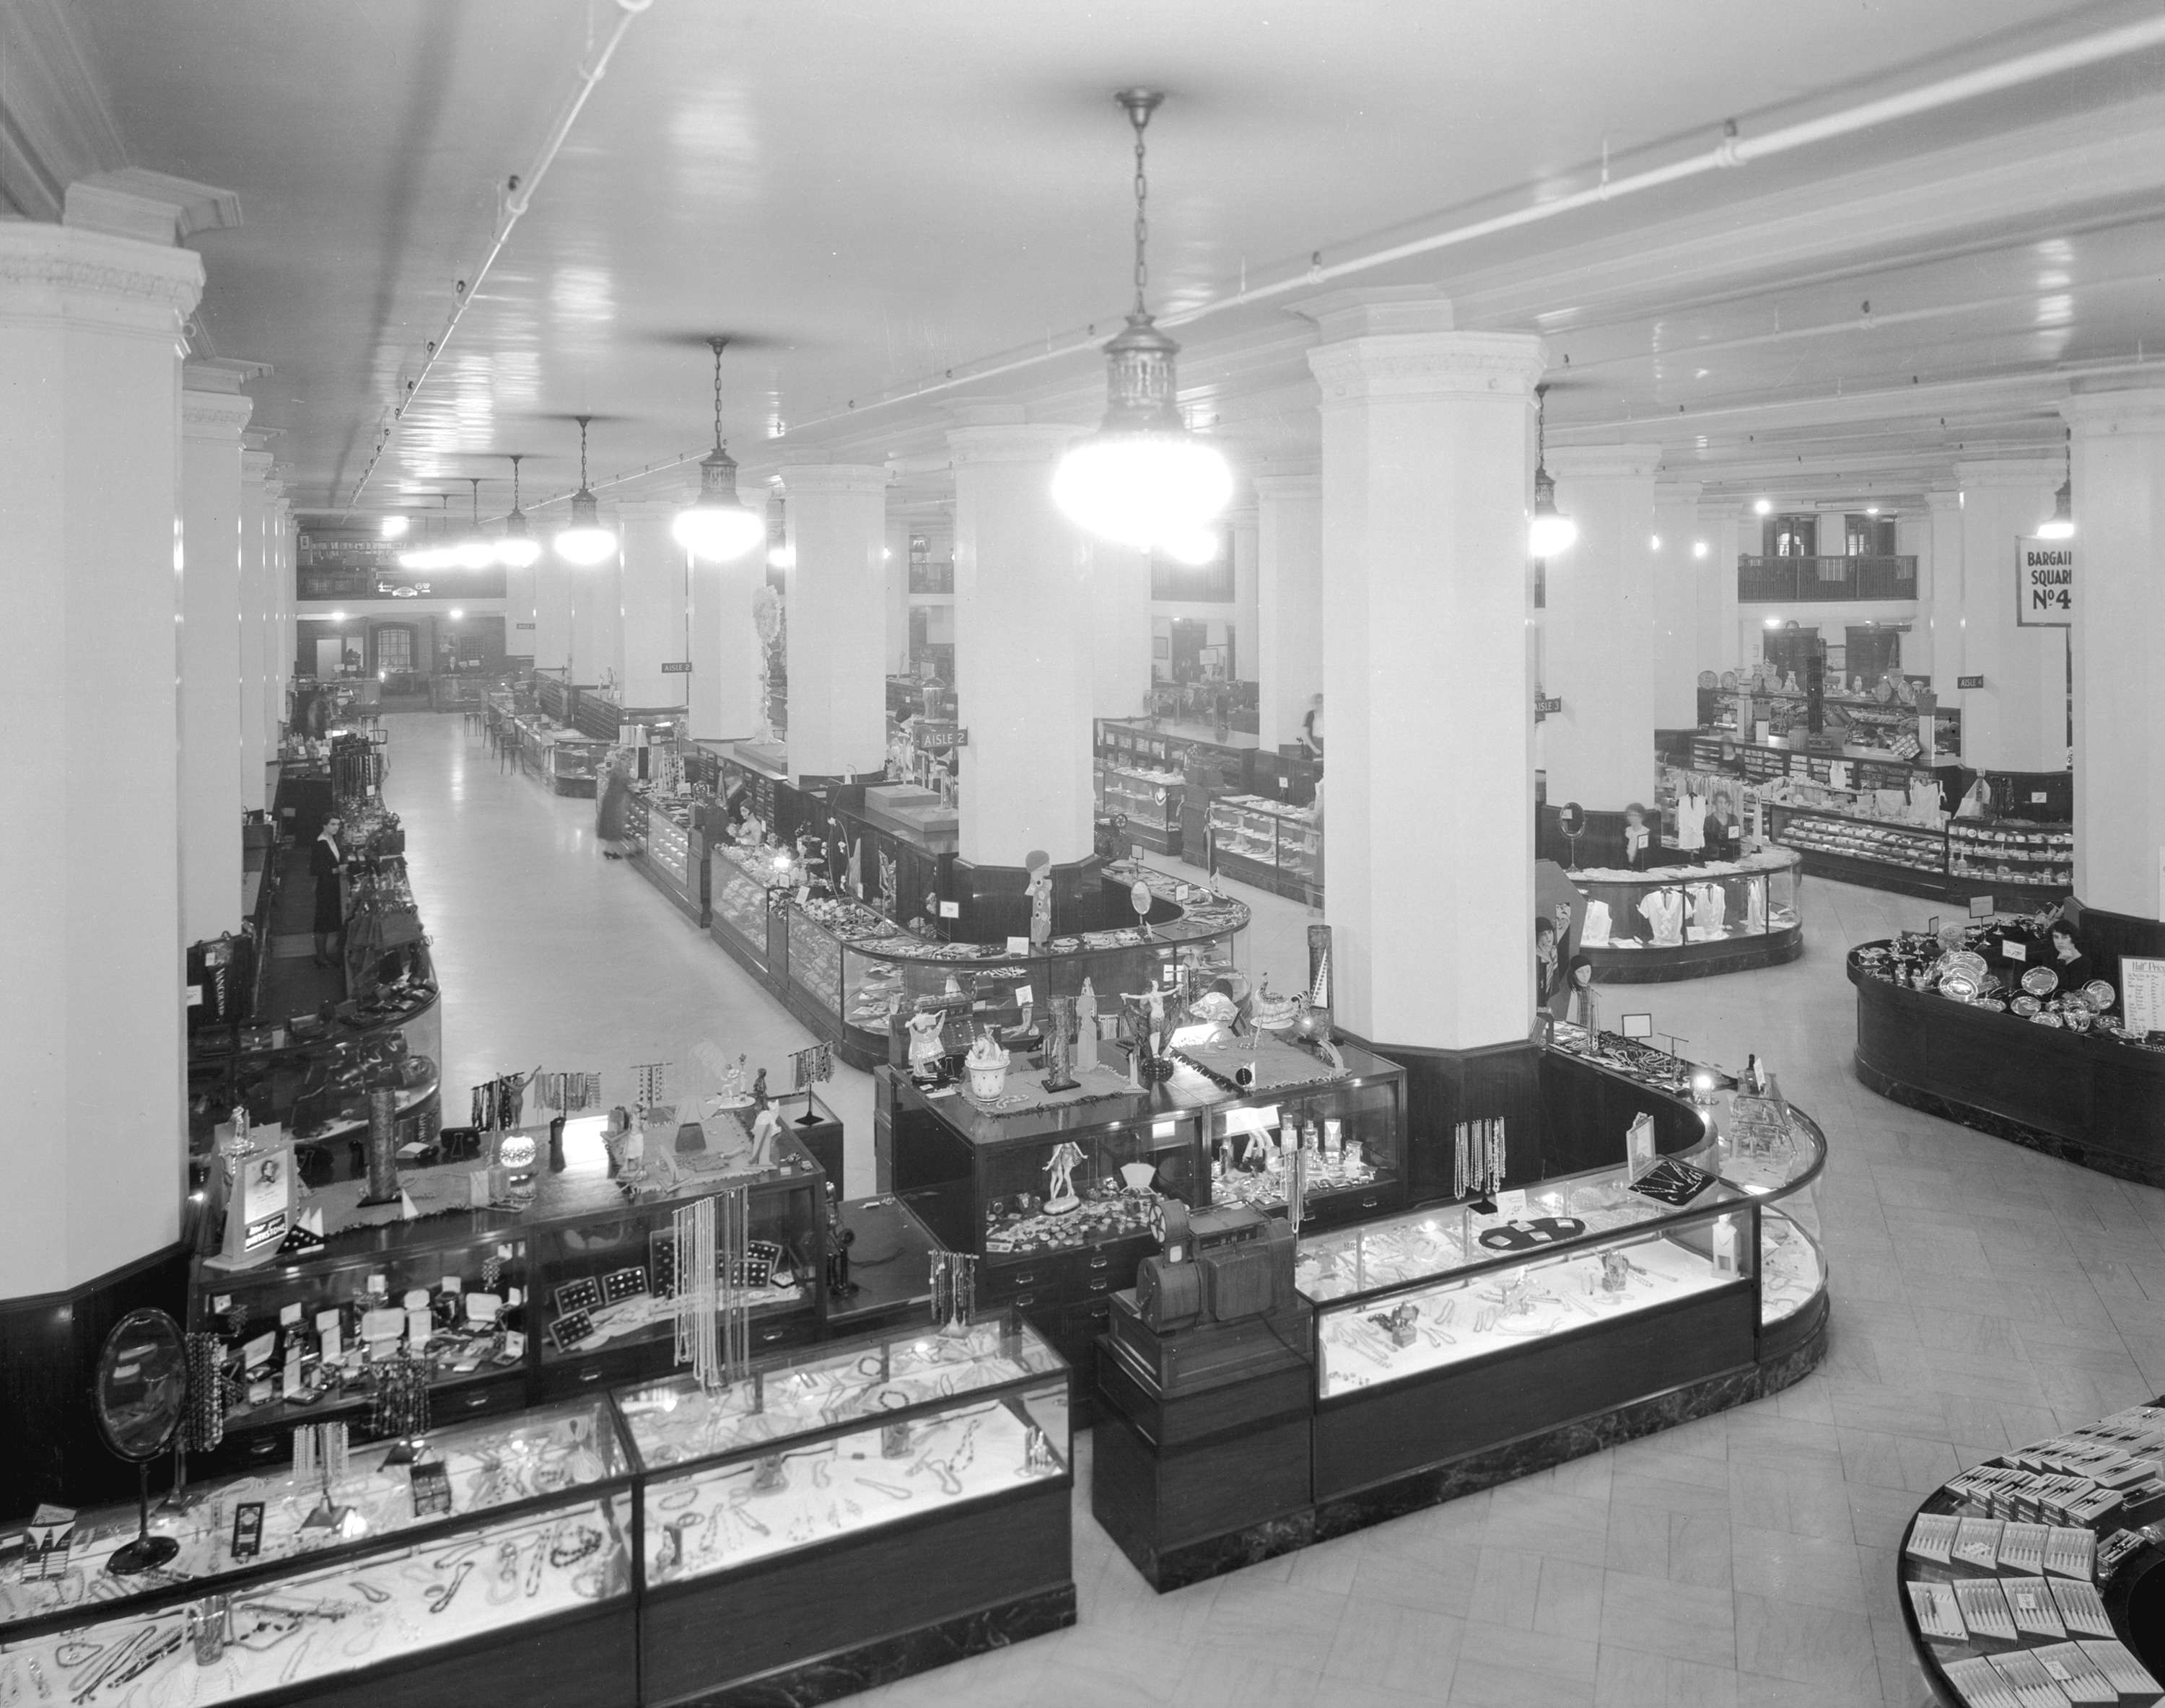 The jewellery department in Hudson's Bay in 1931 (Stuart Thomson/HBC)